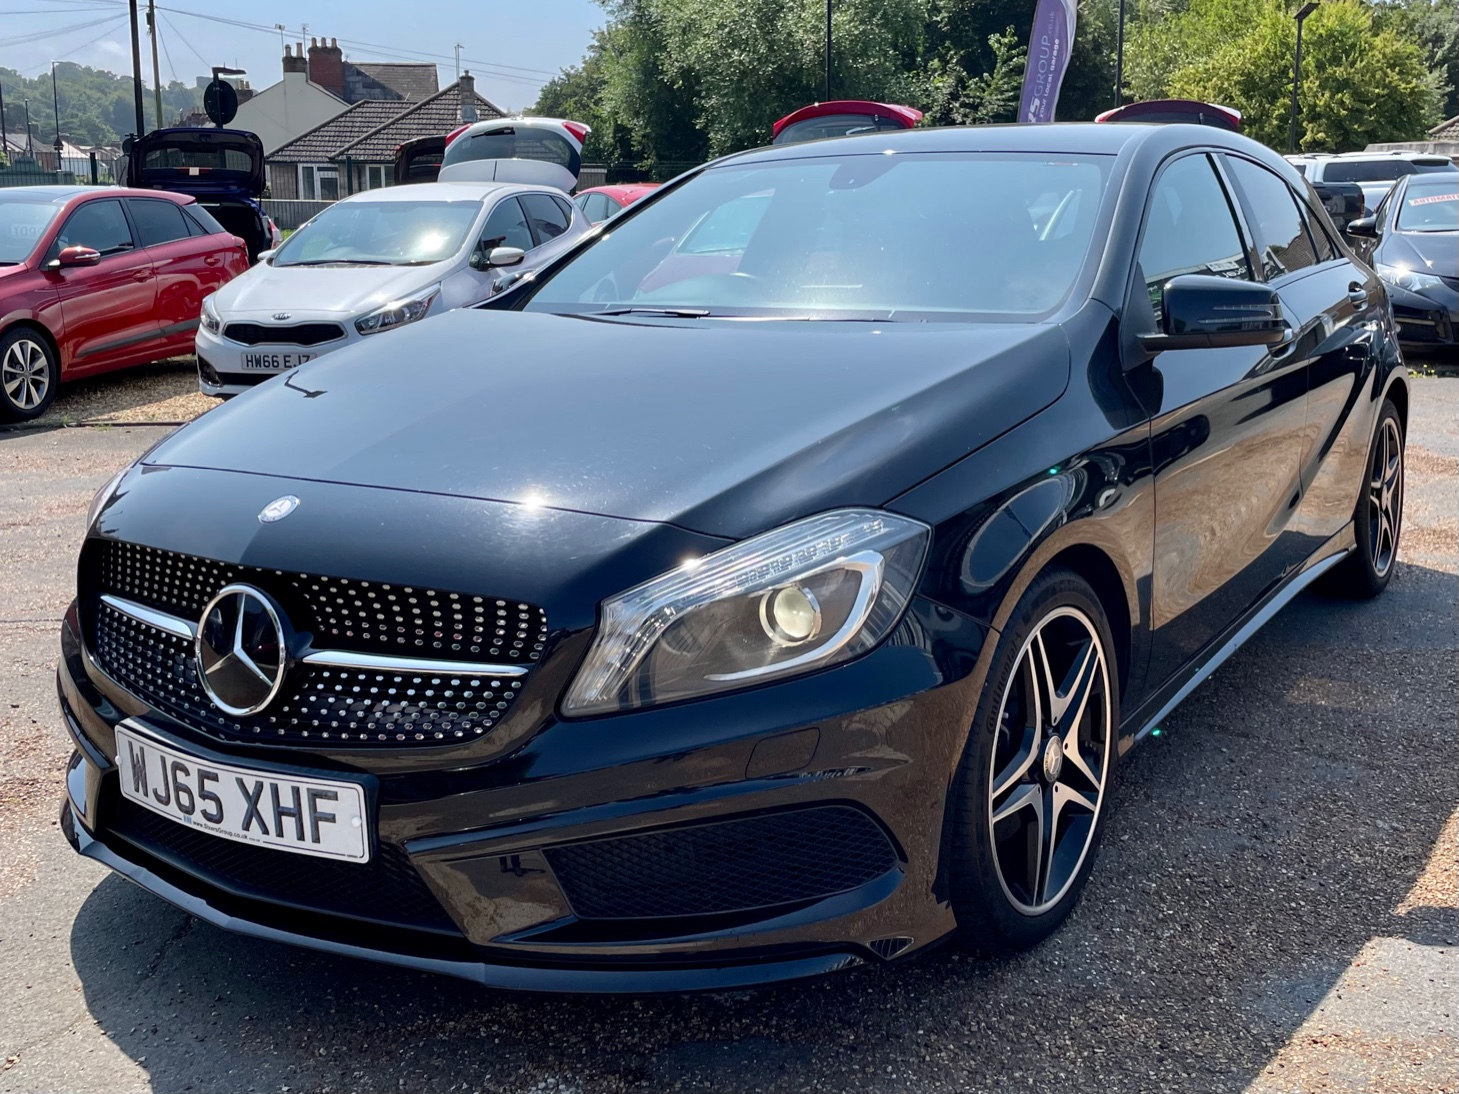 Car For Sale Mercedes A Class - WJ65XHF Sixers Group Image #5